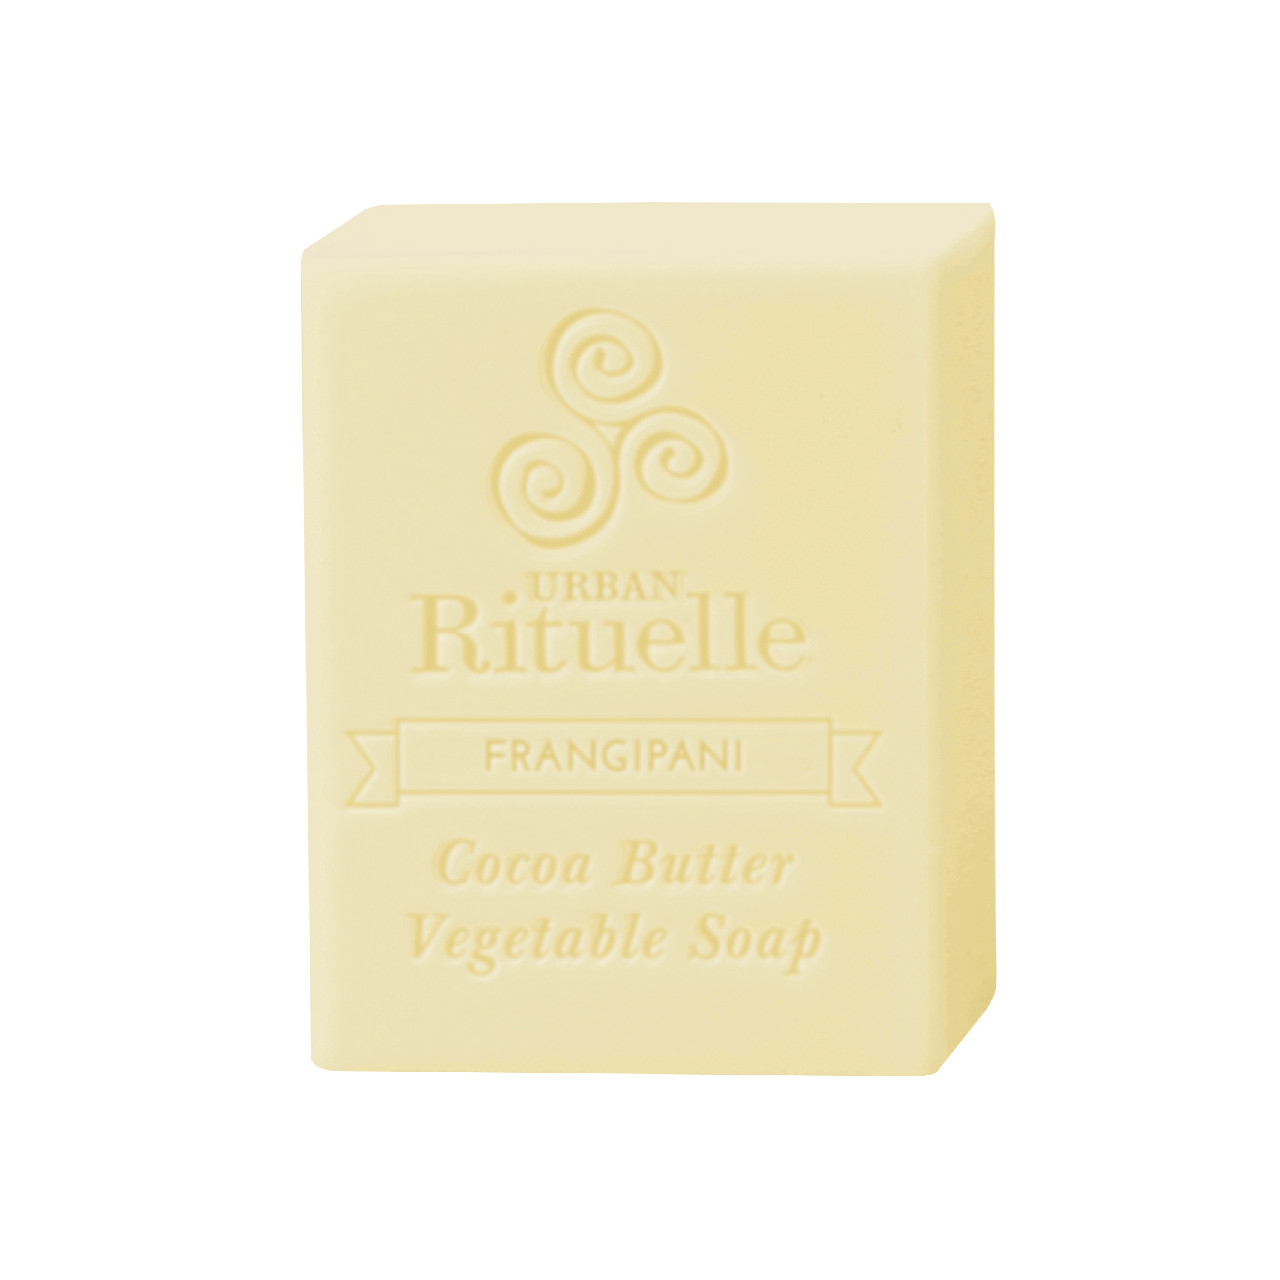 Organic Cocoa Butter Vegetable Soap - Frangipani - Urban Rituelle